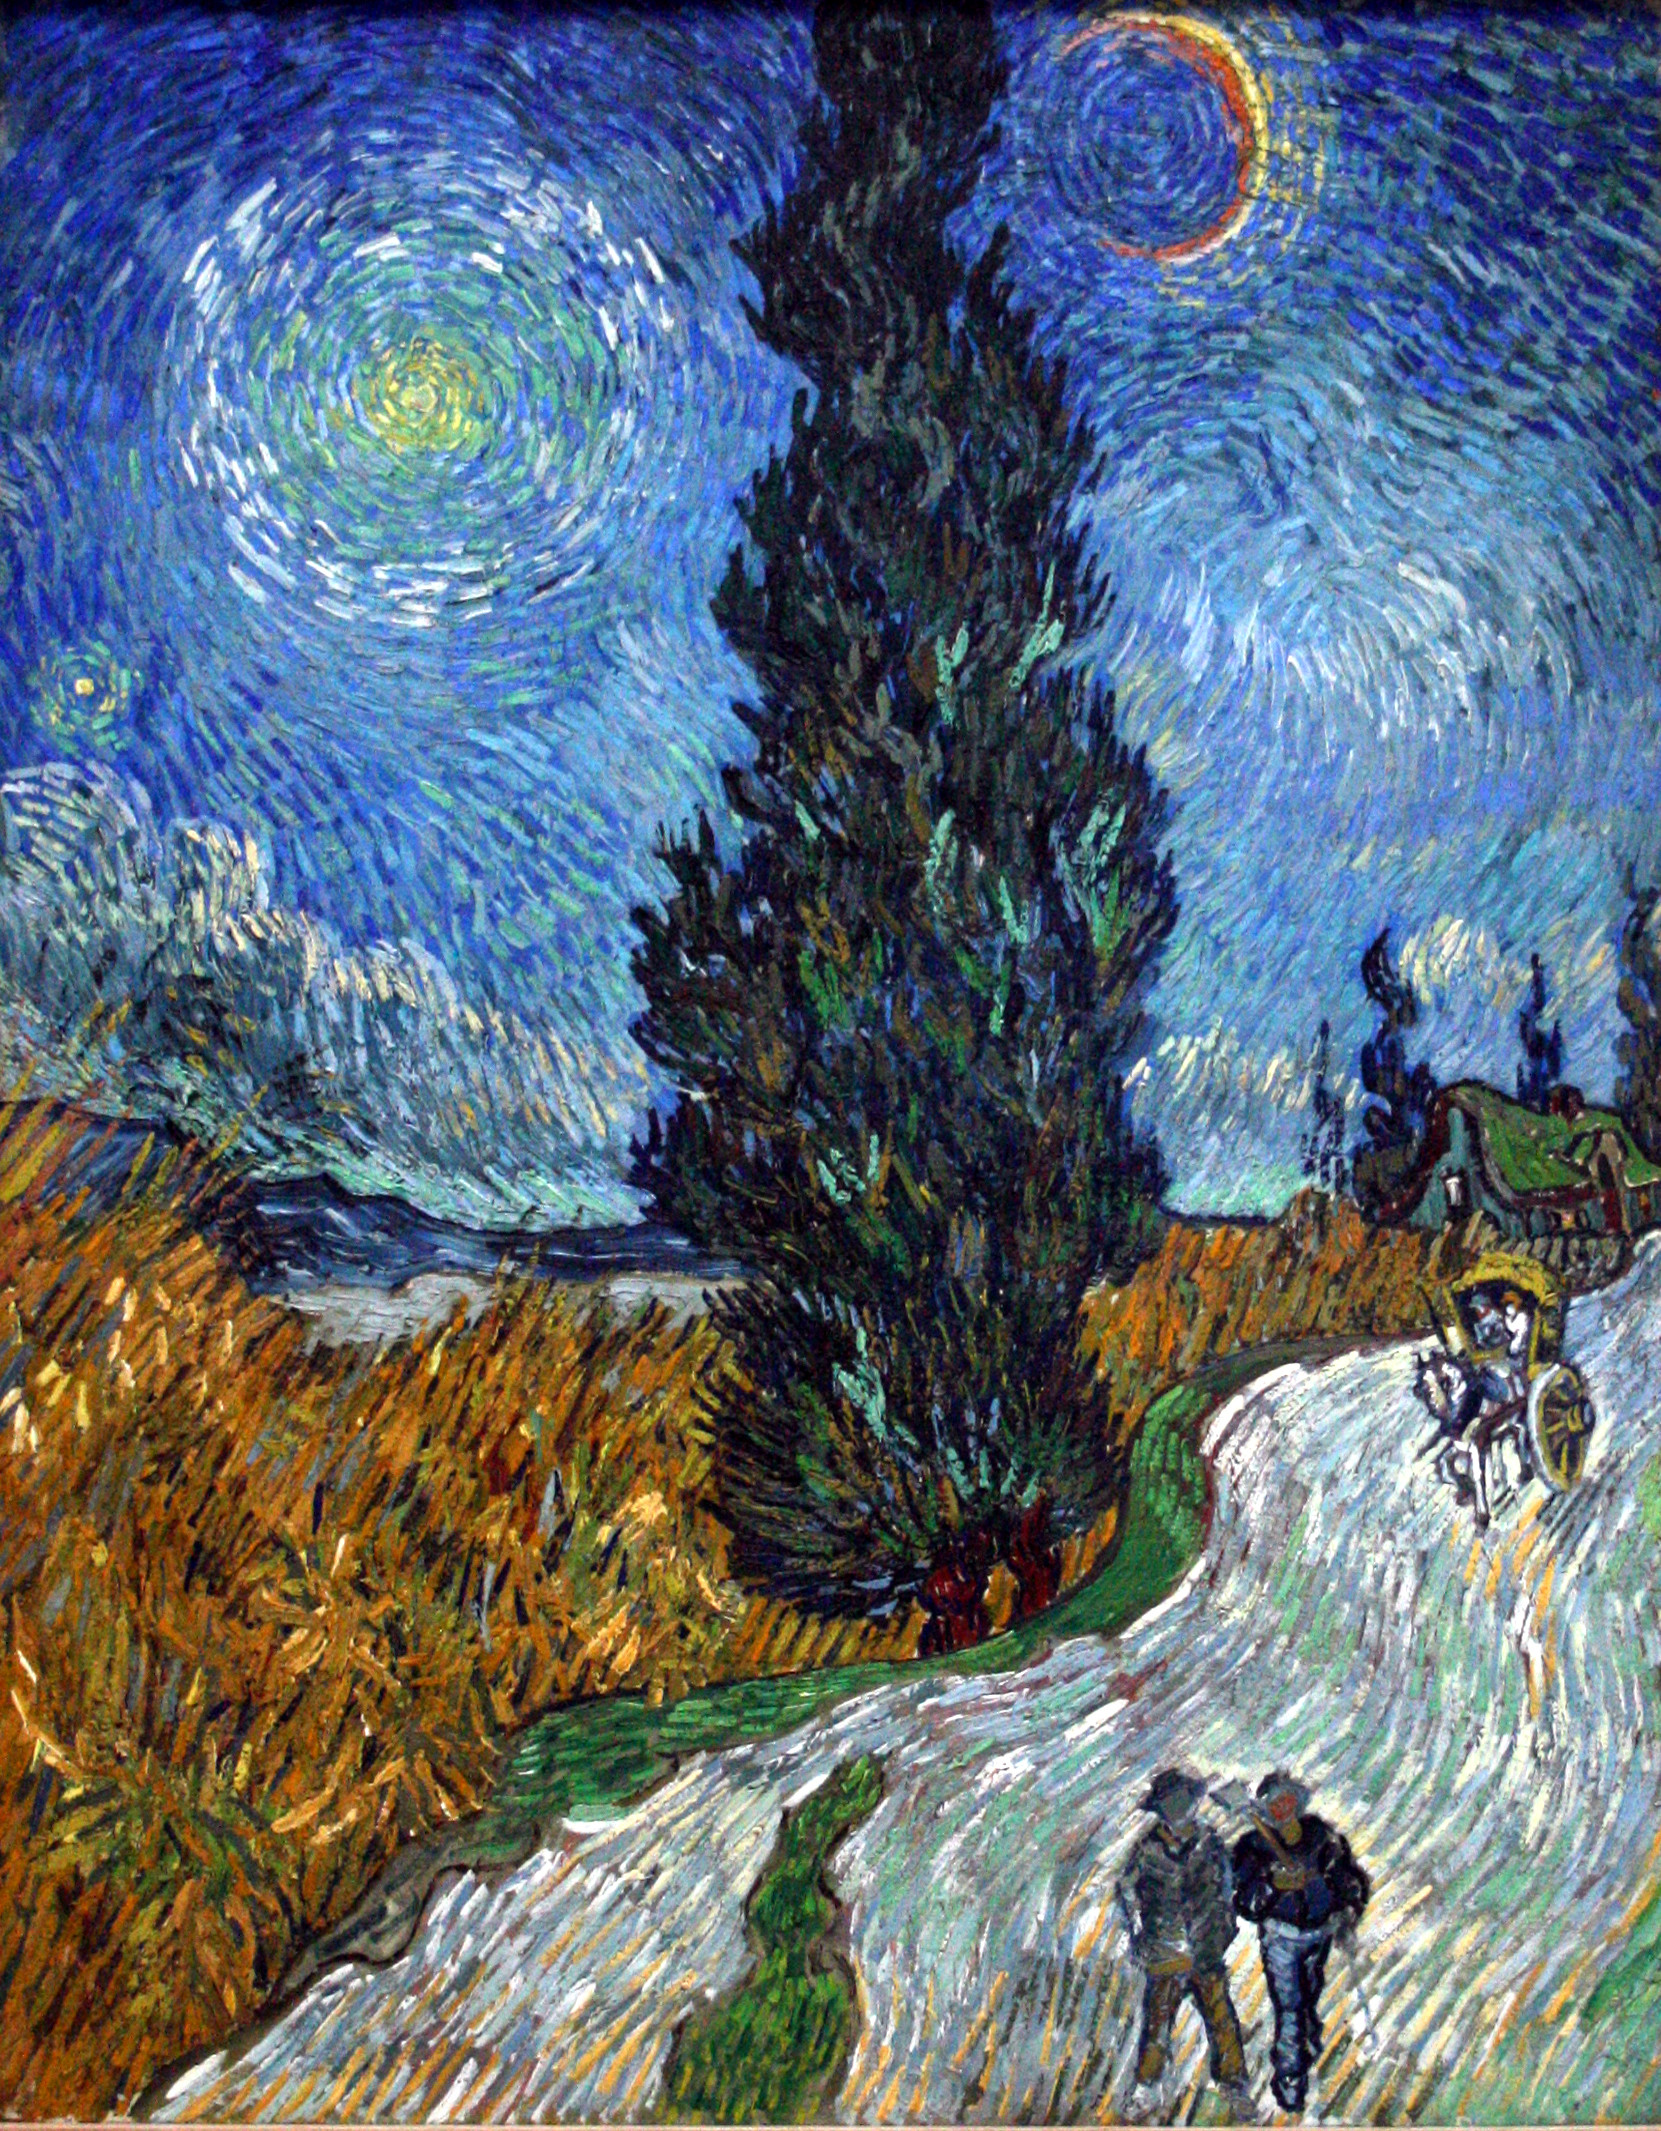 1920x1200 Best Space Wallpapers HD. Download · 1920x1080 Vincent Van Gogh Painting